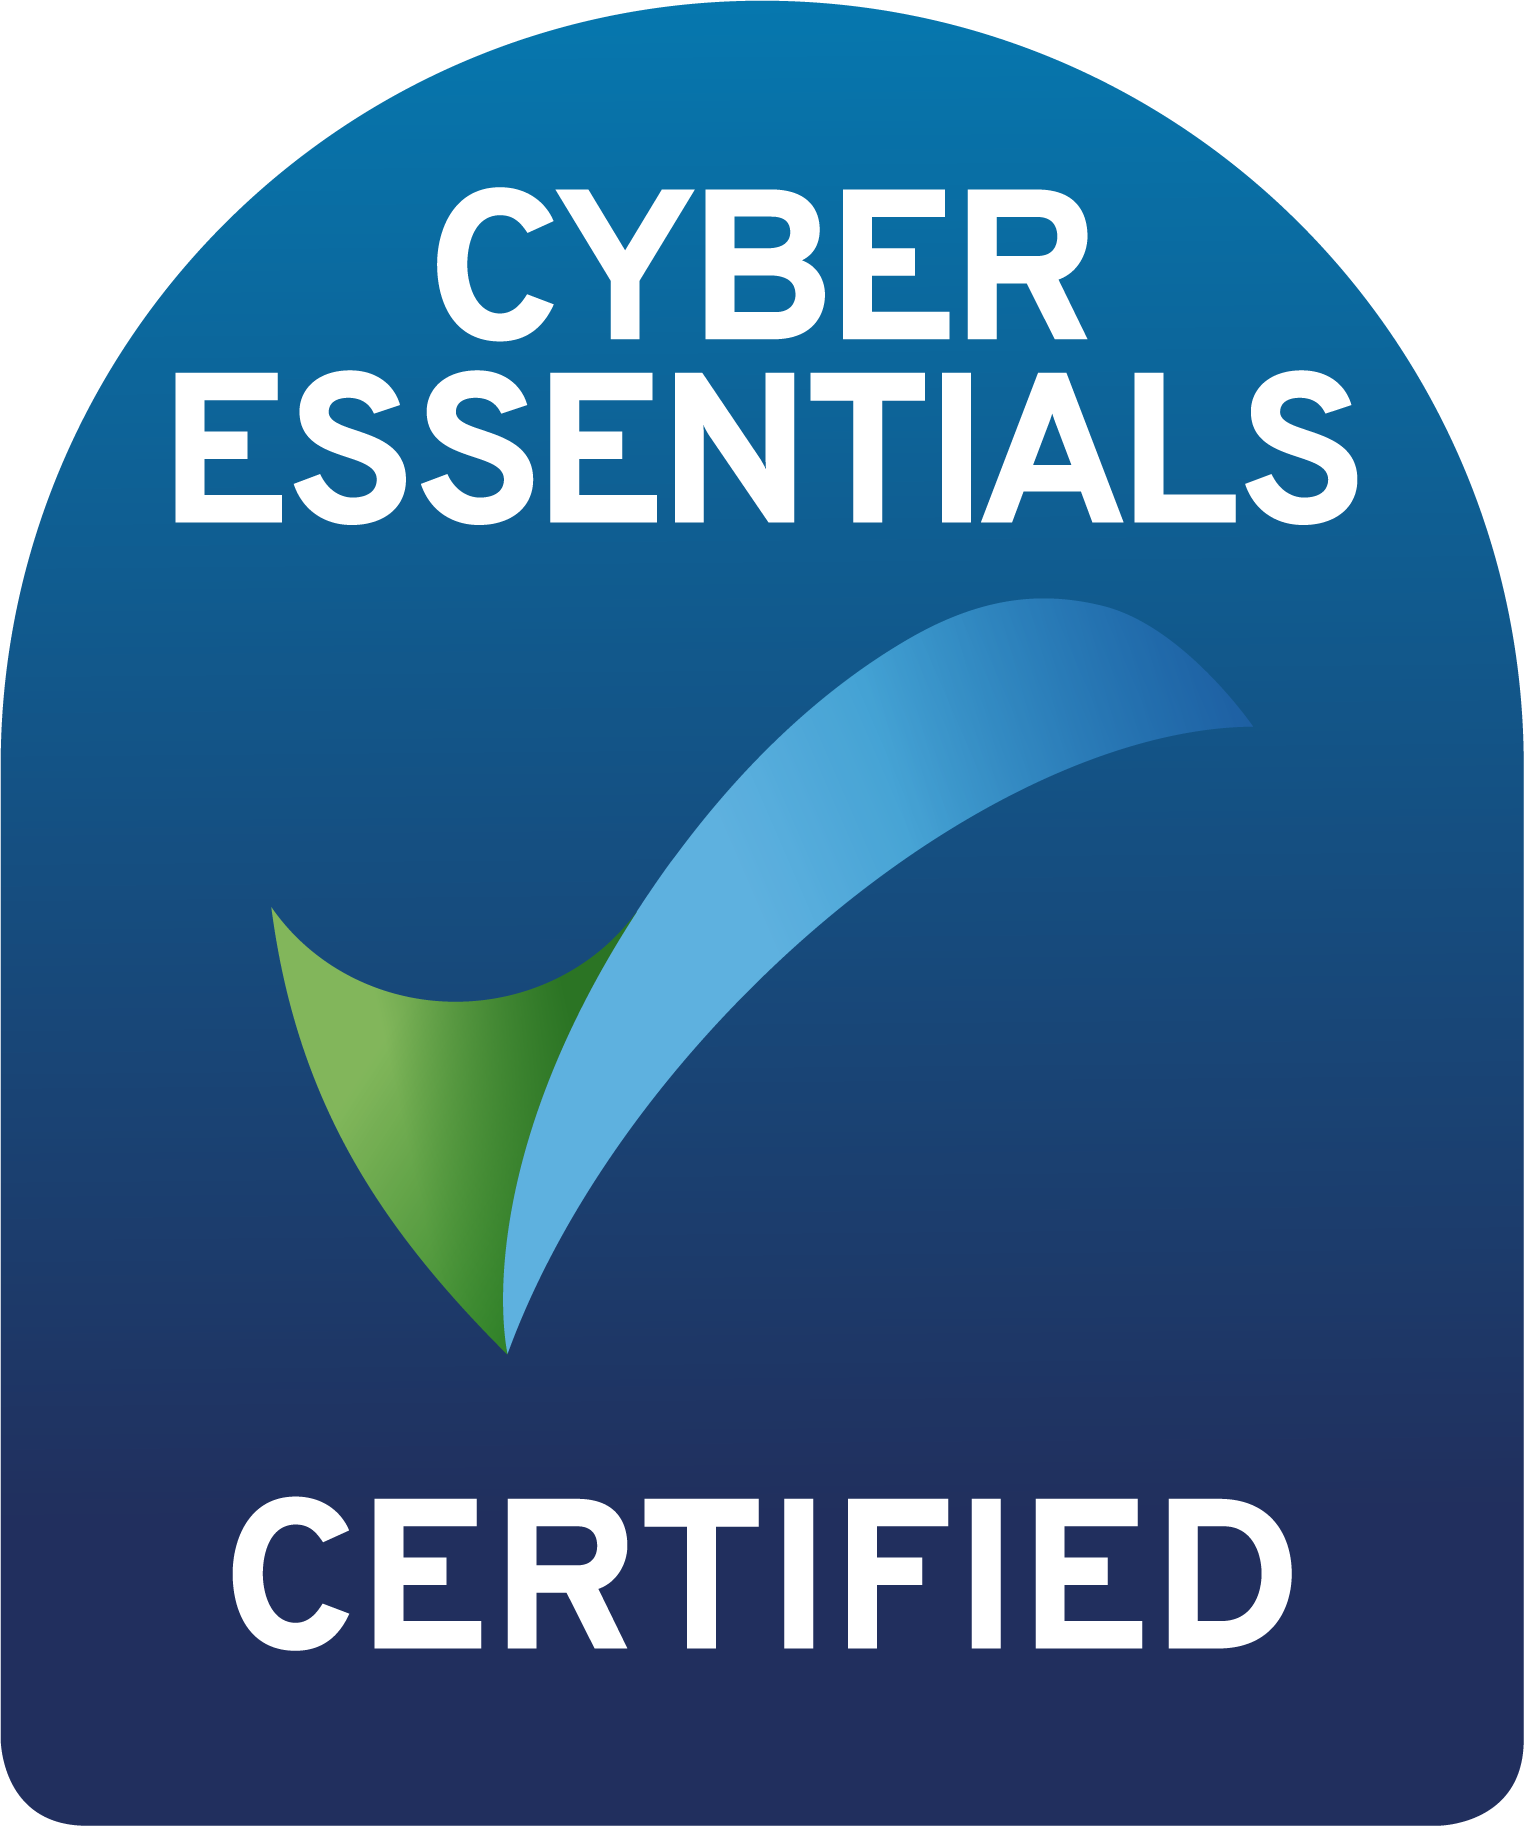 cyberessentials_certification_mark_colour_